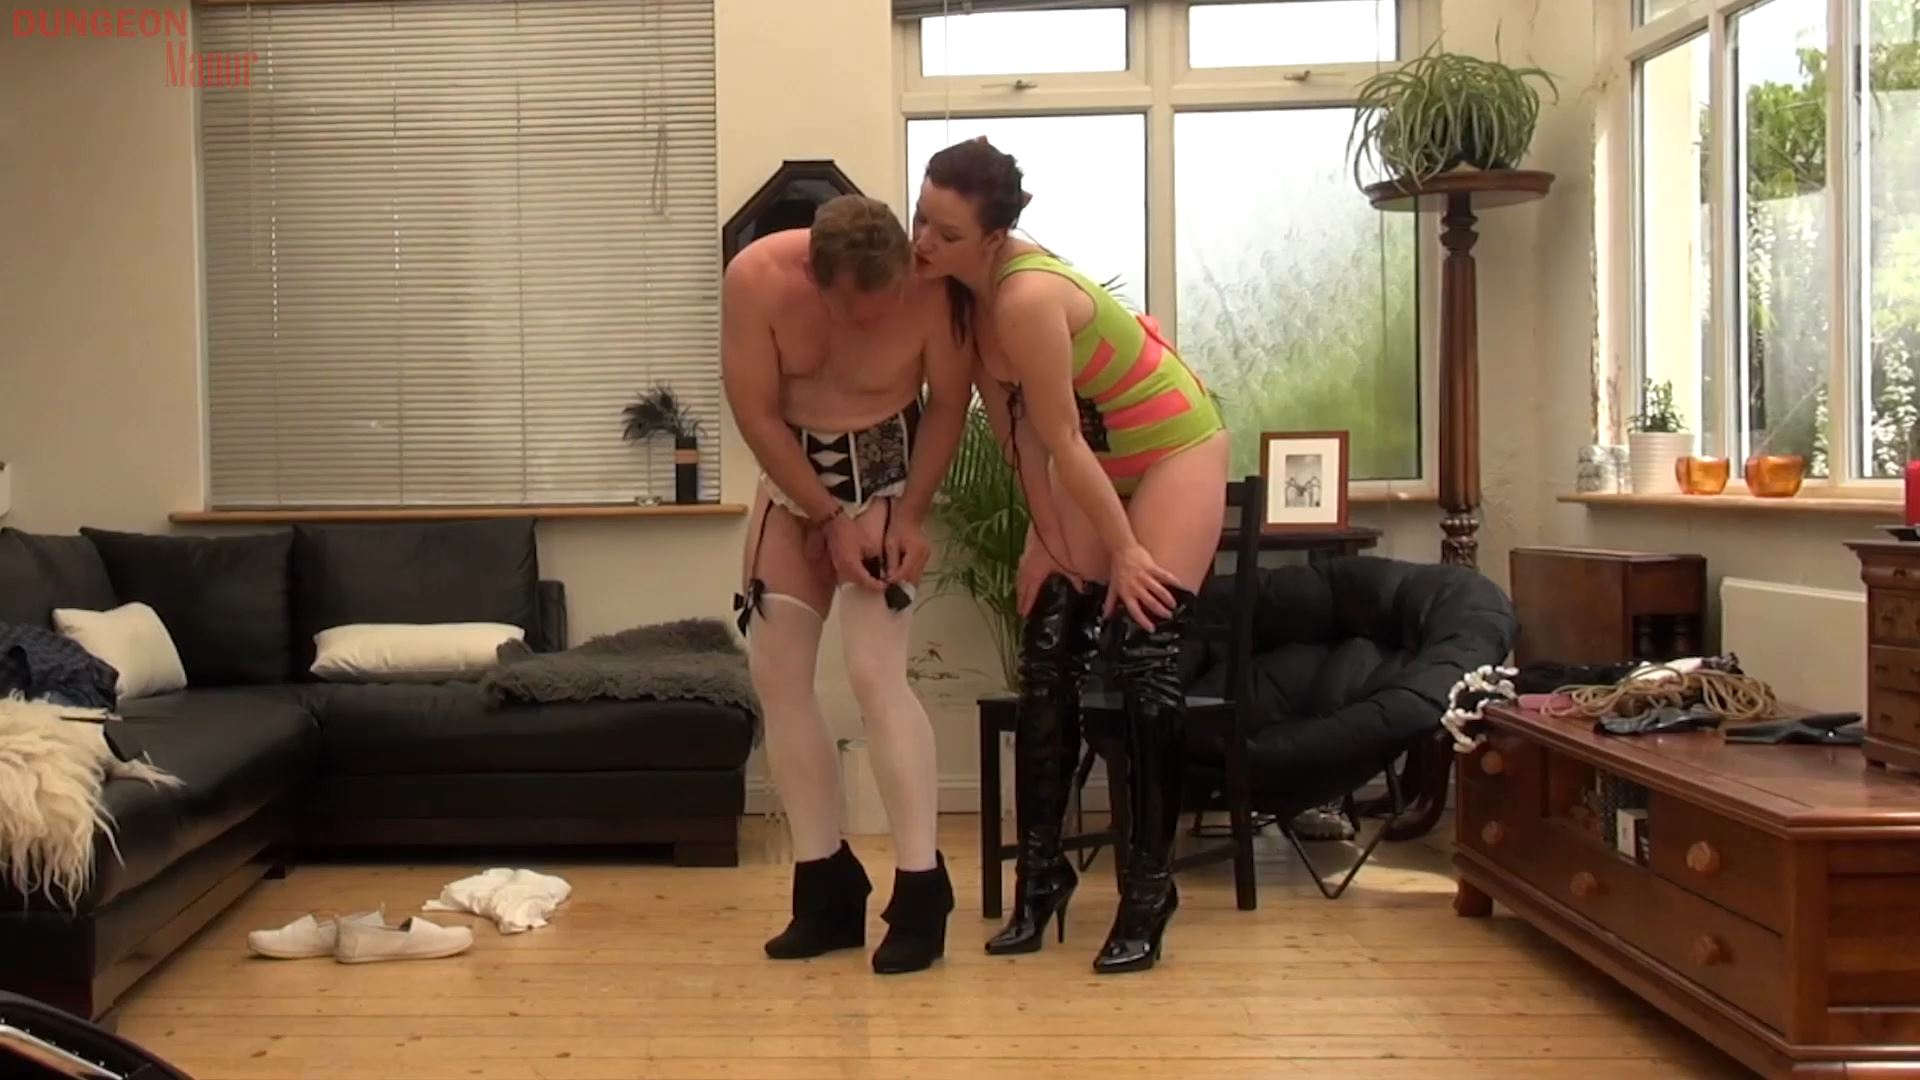 A dungeon Manor Production 403 - MISTRESS EVILYNE - FULL HD/1080p/MP4